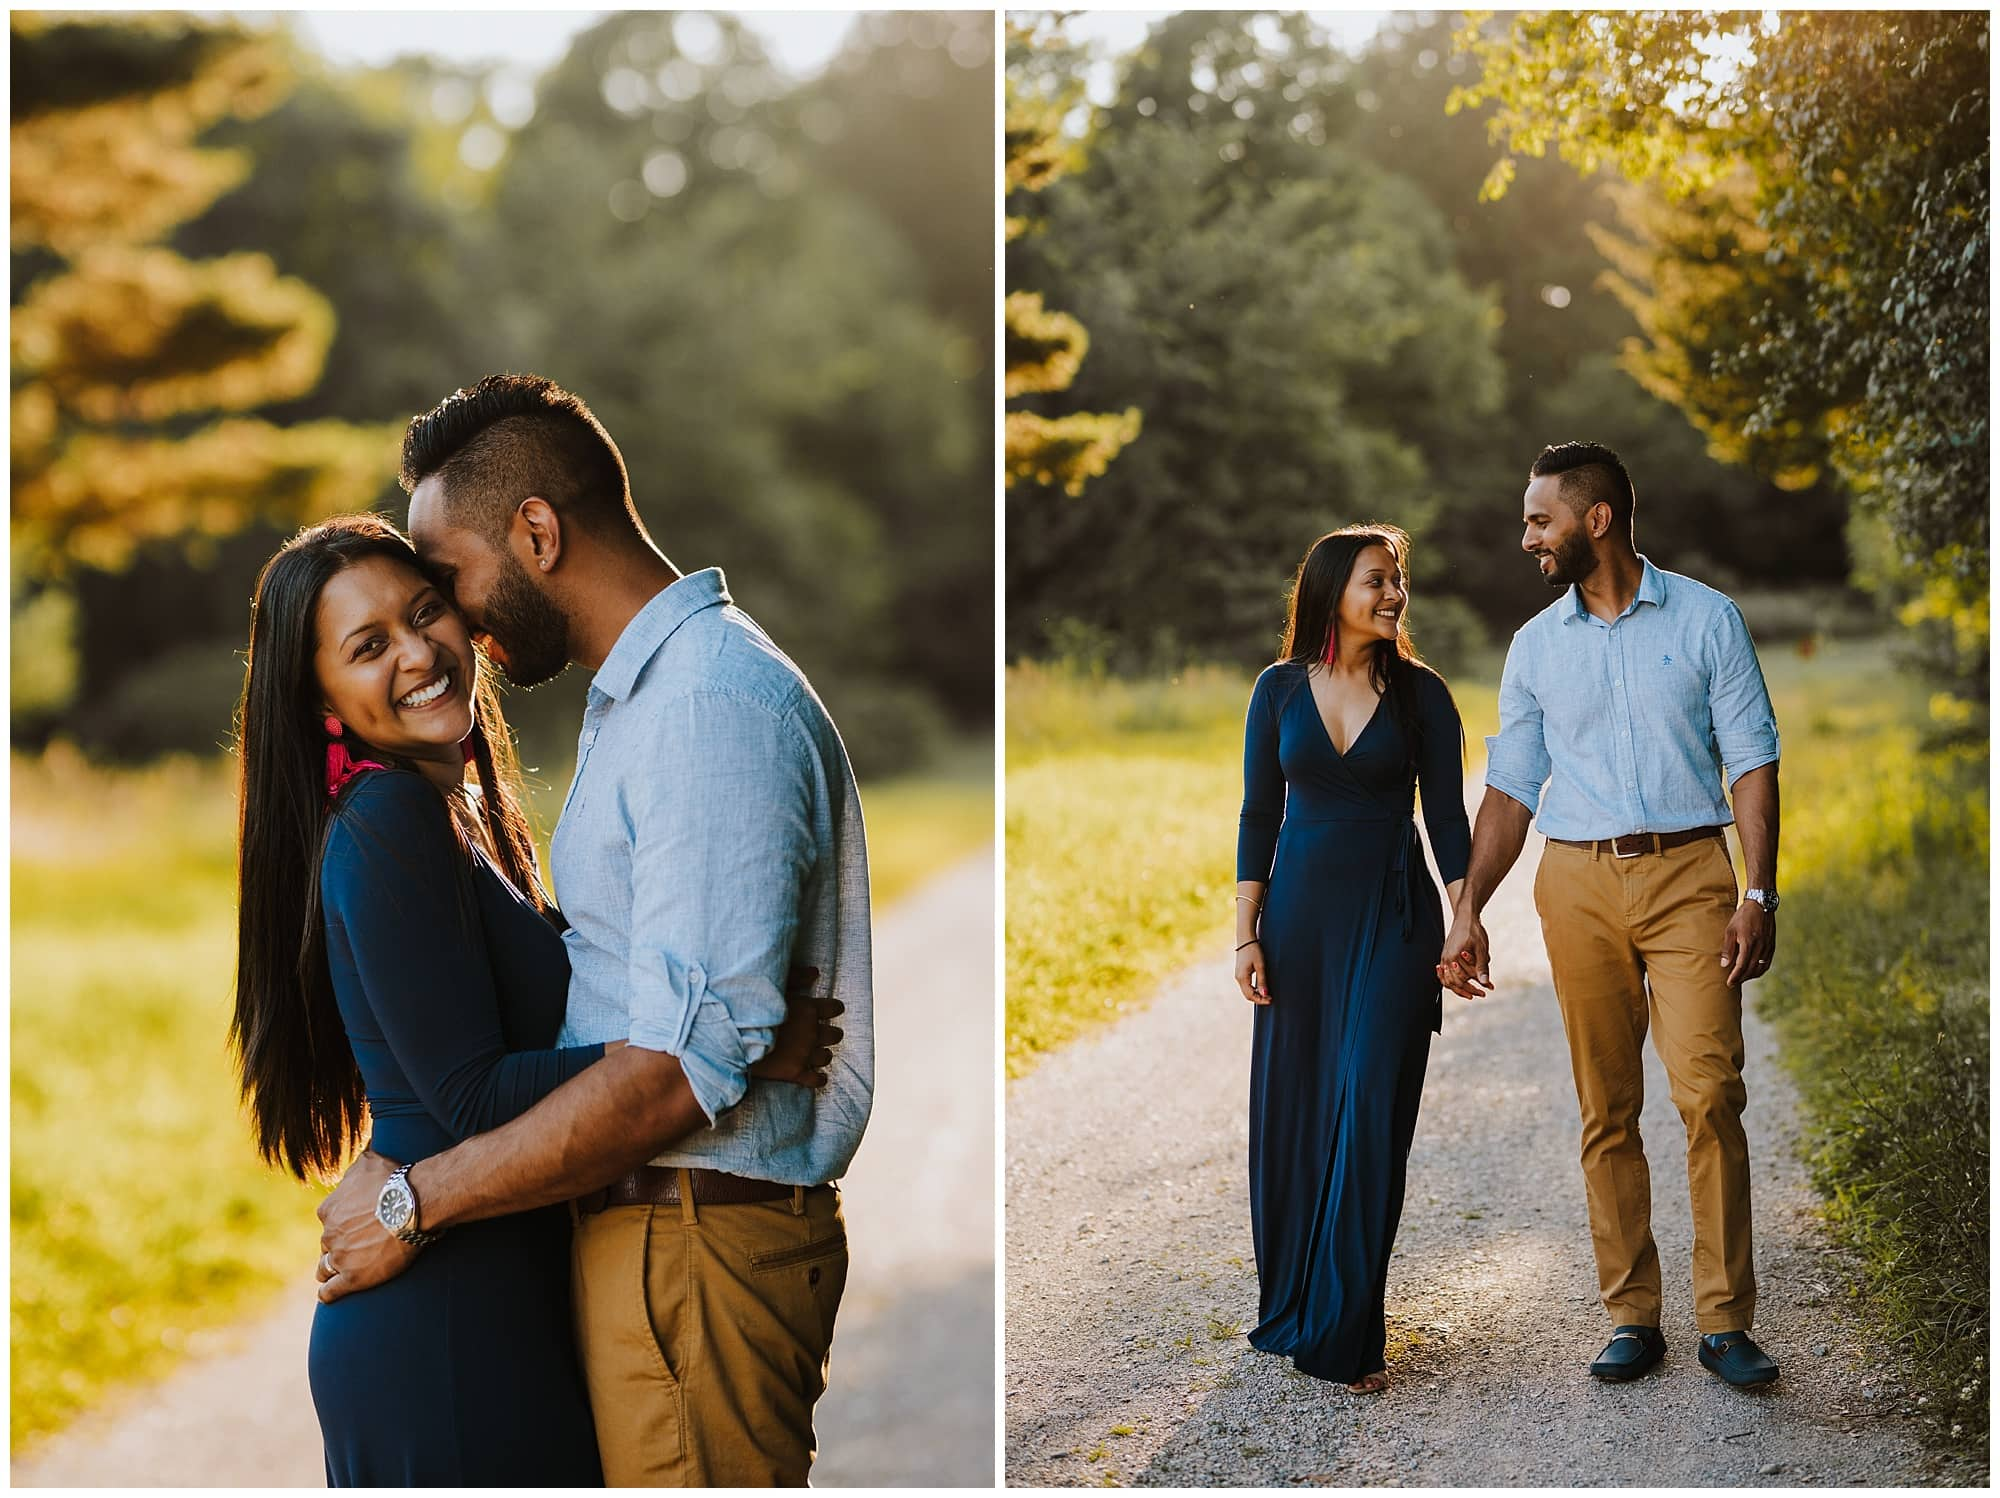 Summer Stony Creek Engagement Session-29.JPG